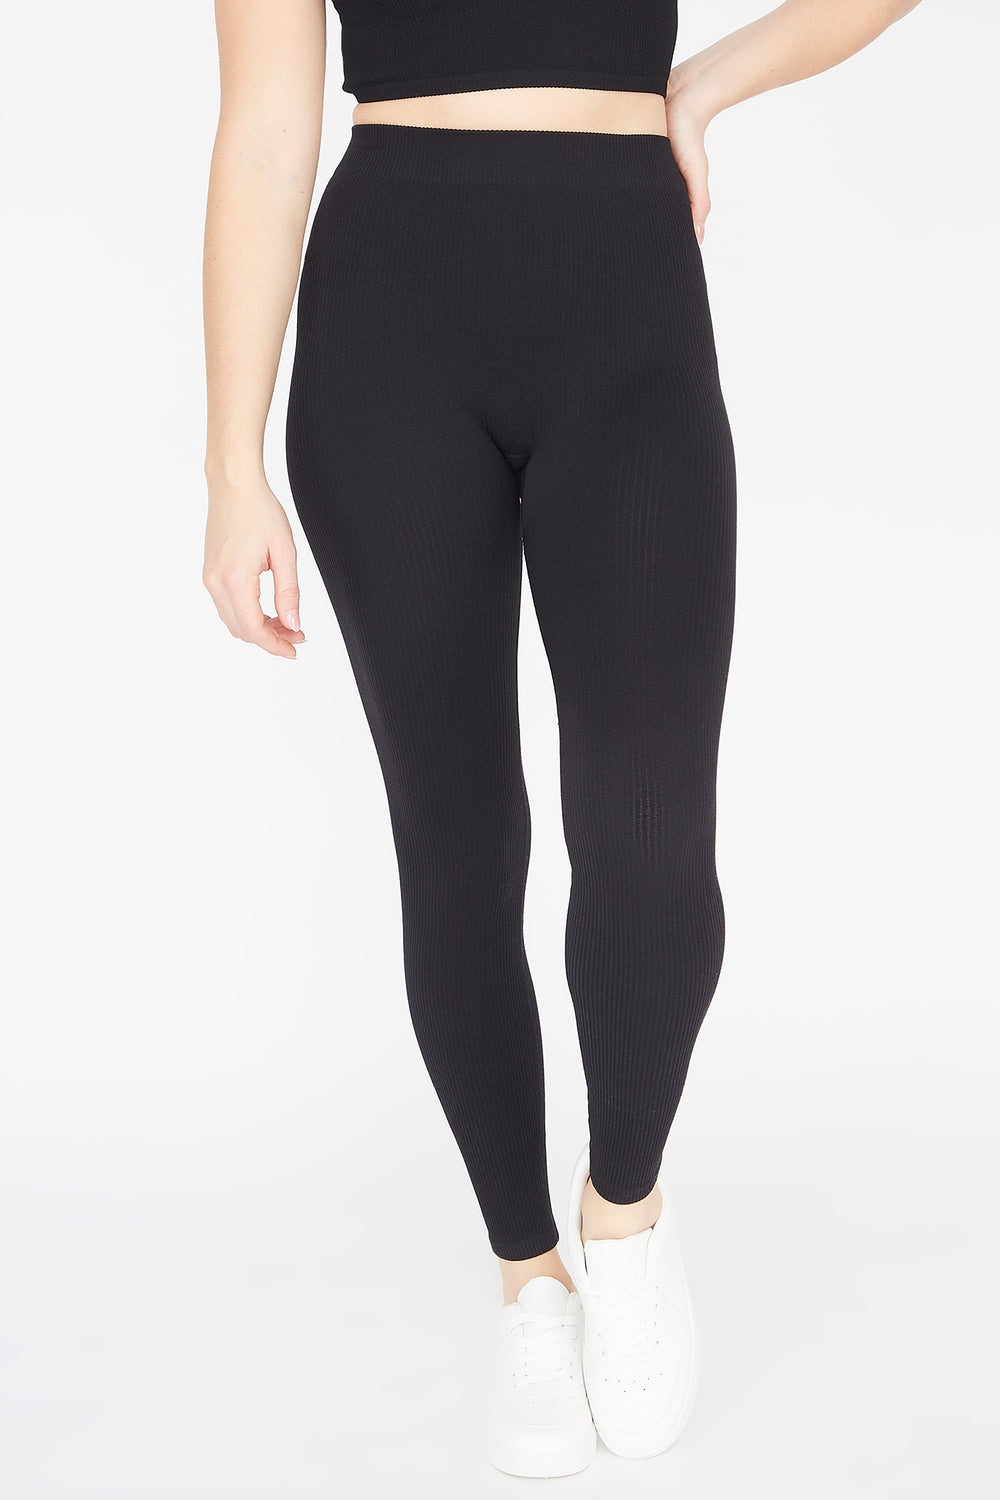 Ribbed Pull-On Legging Black